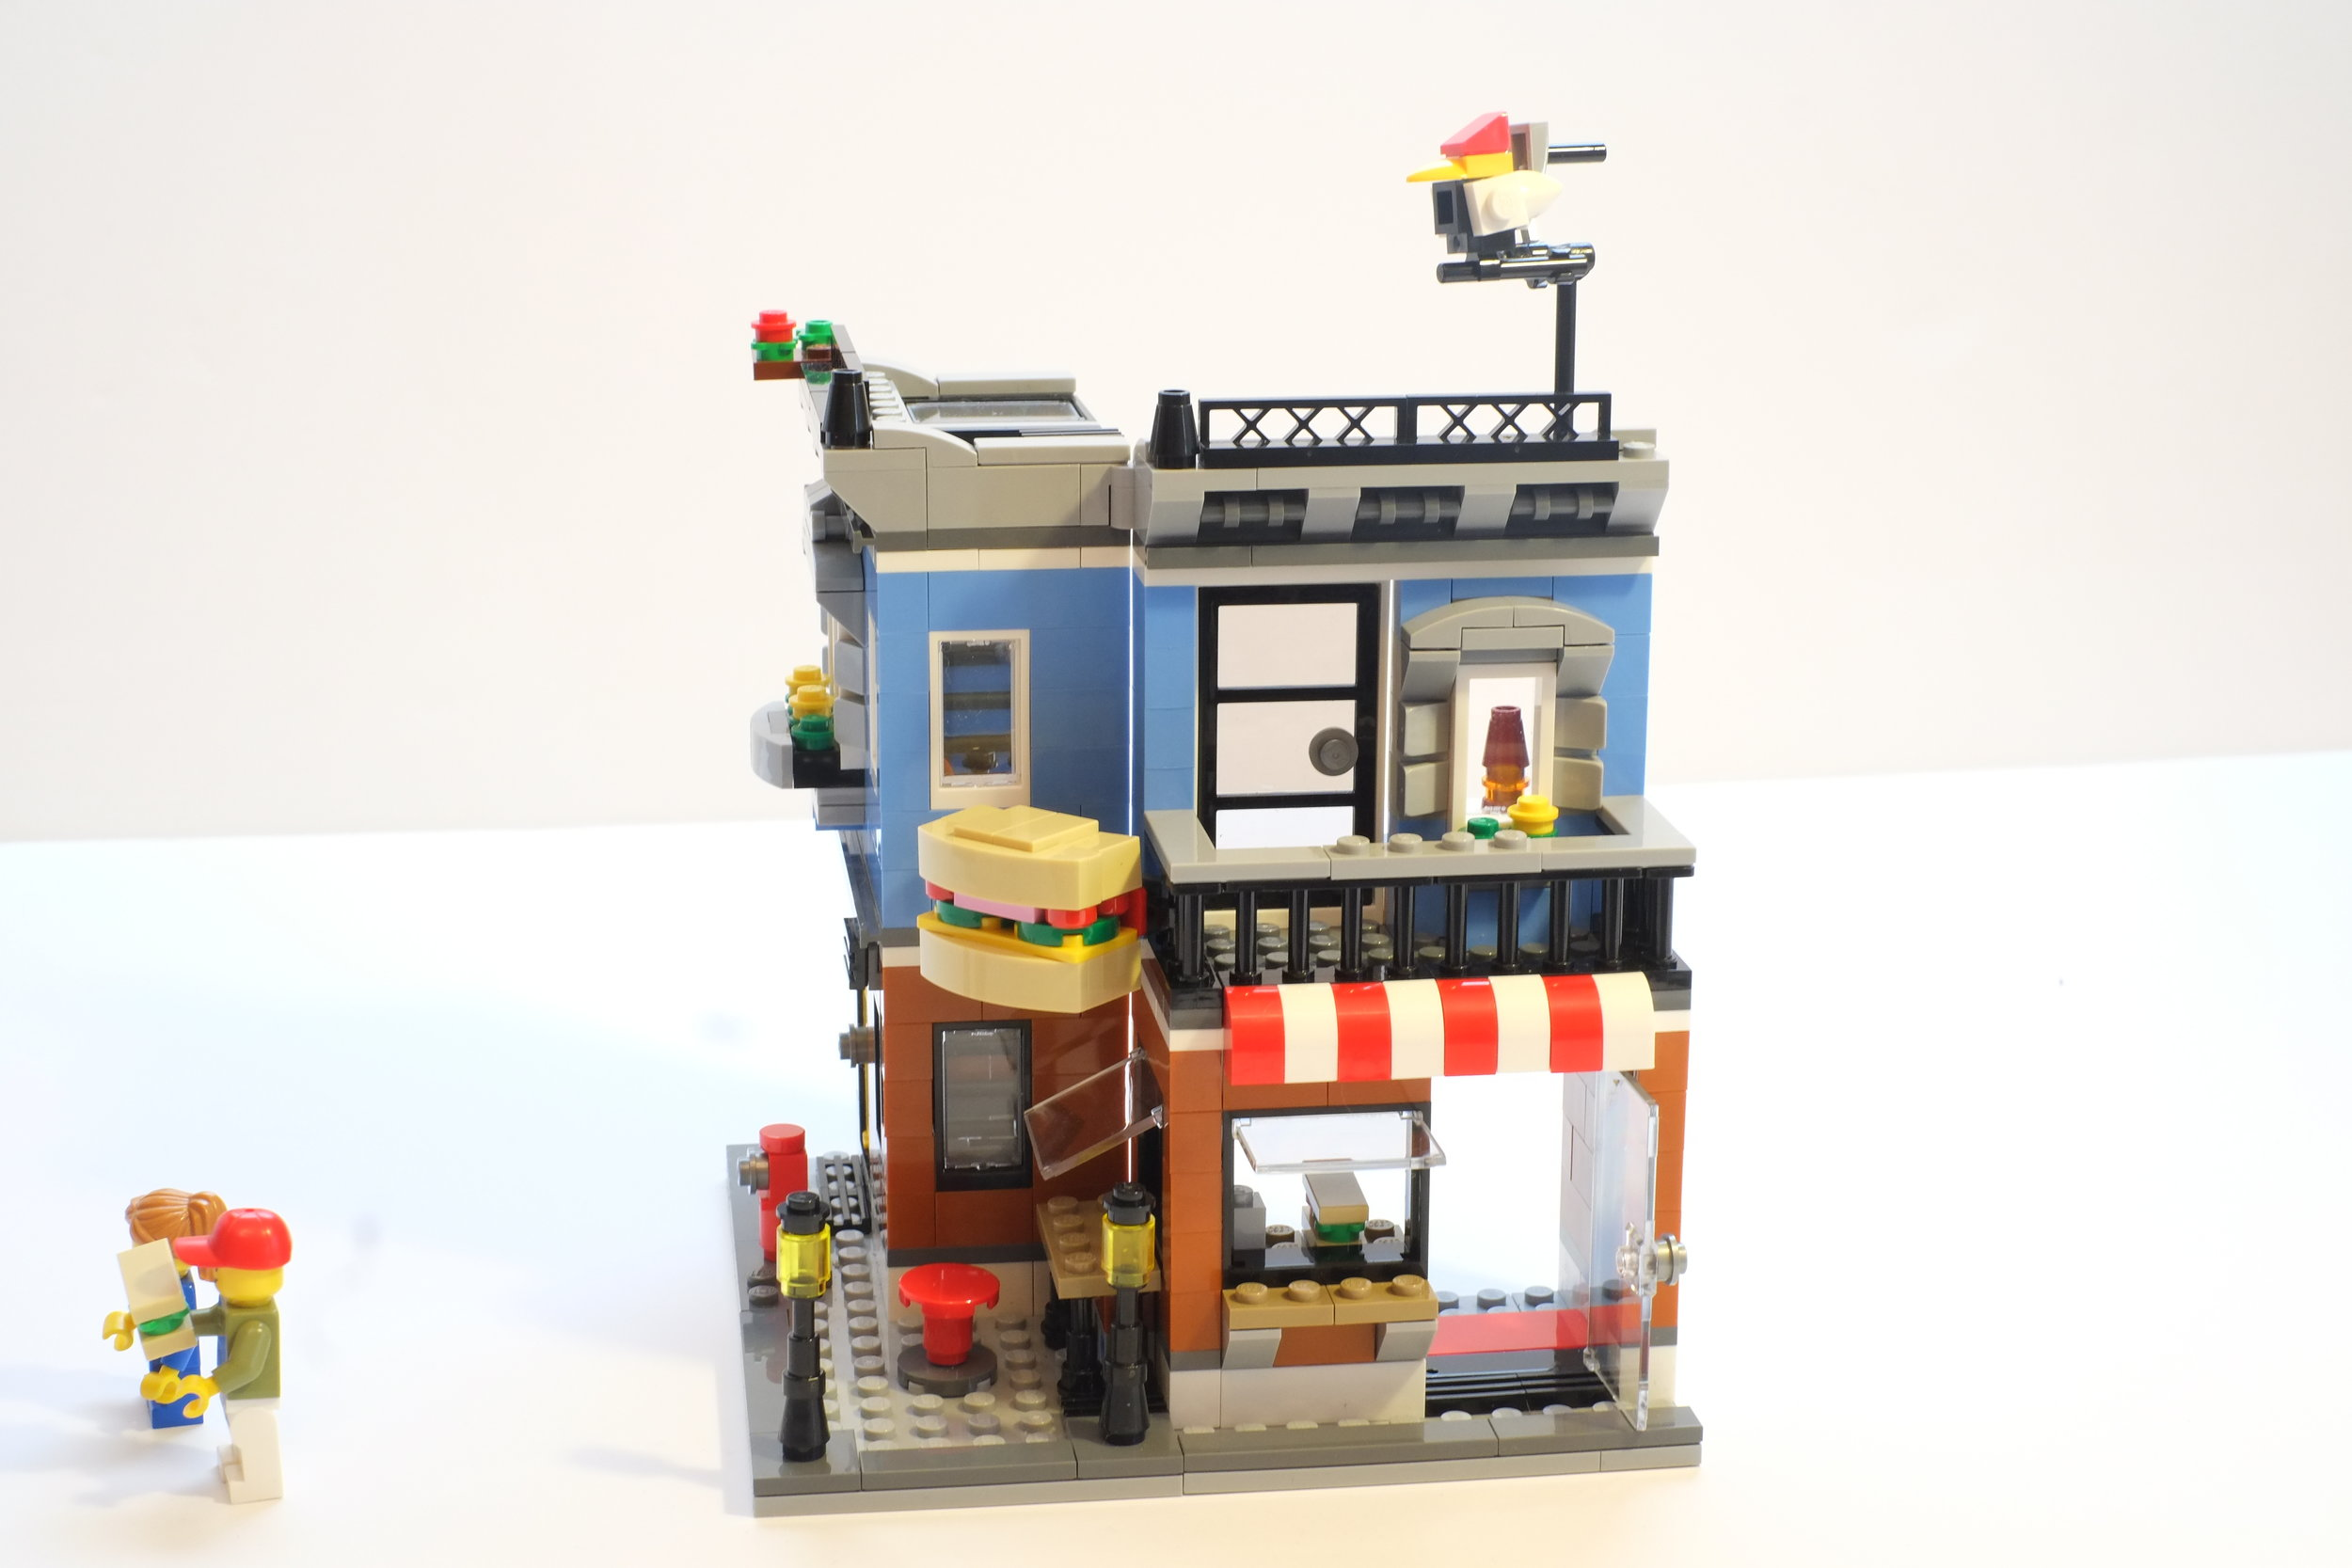 One of five LEGO stop motion contest entries